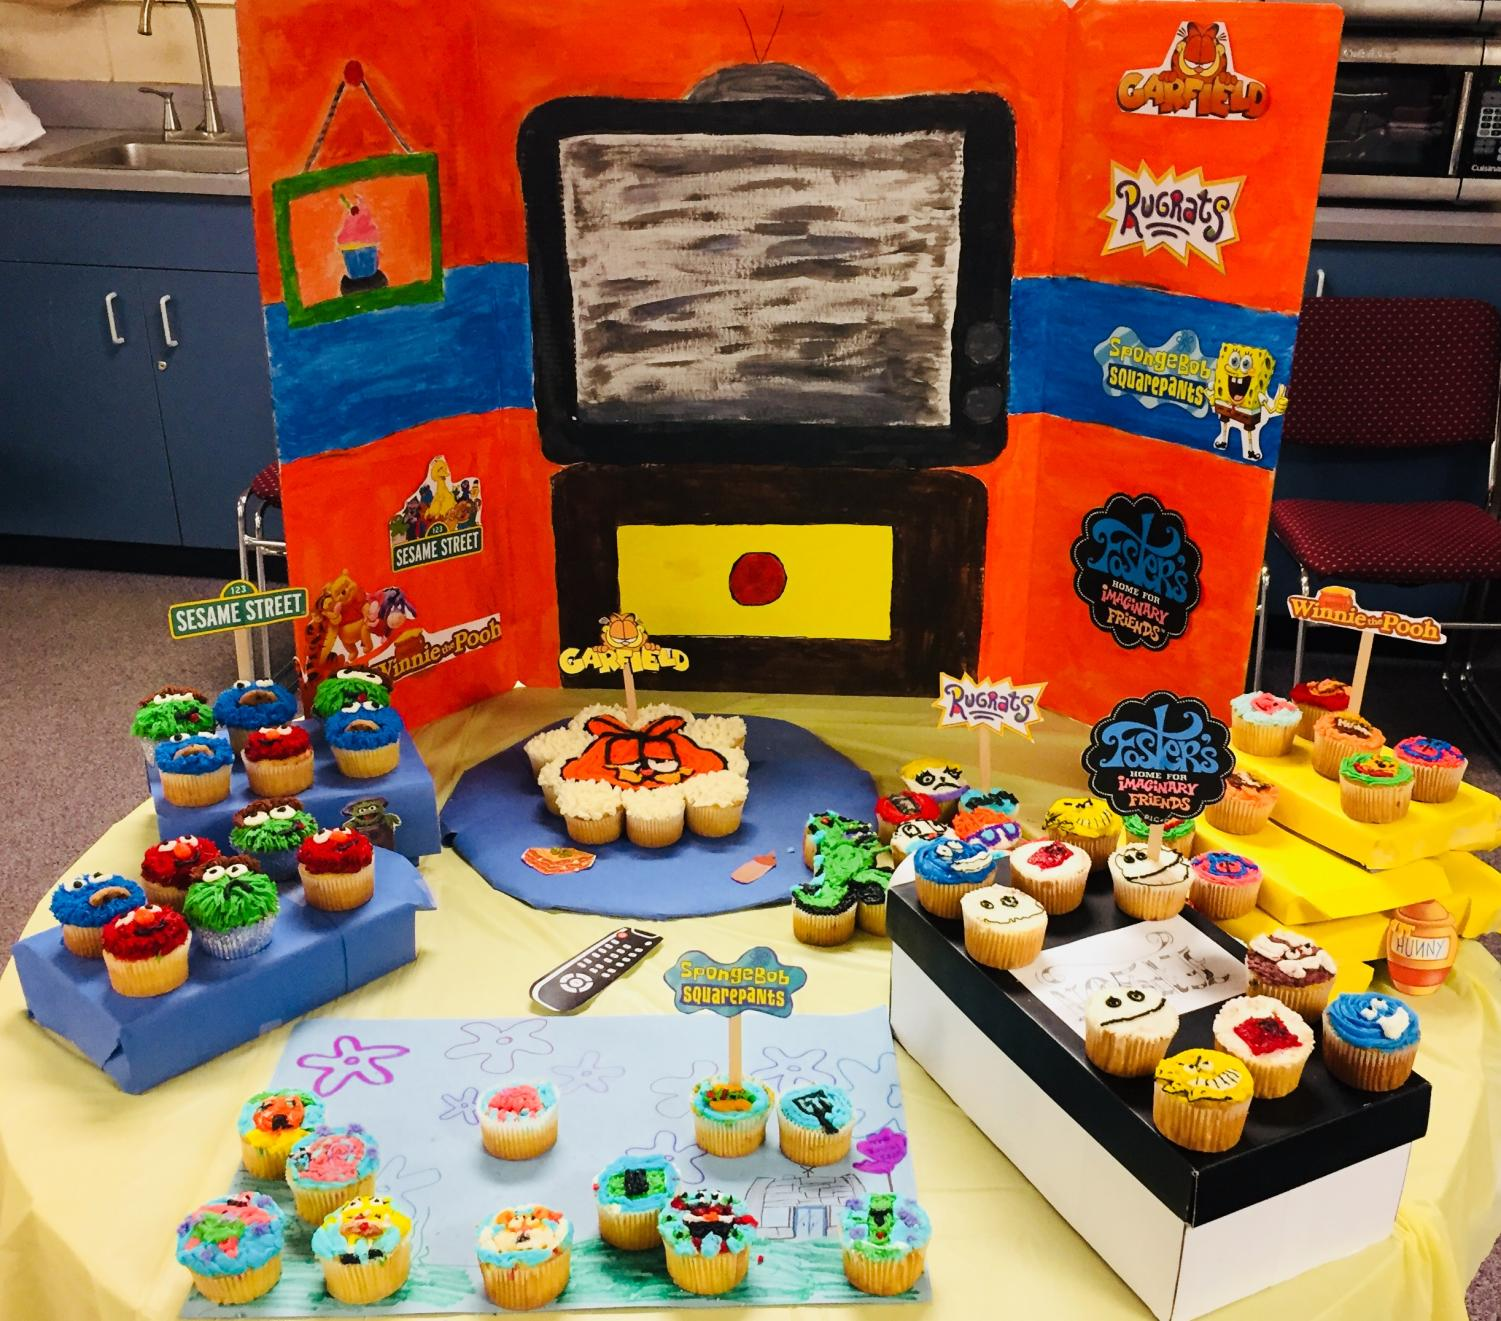 Kids' TV shows themed entry of the annual cupcake war wins first place.